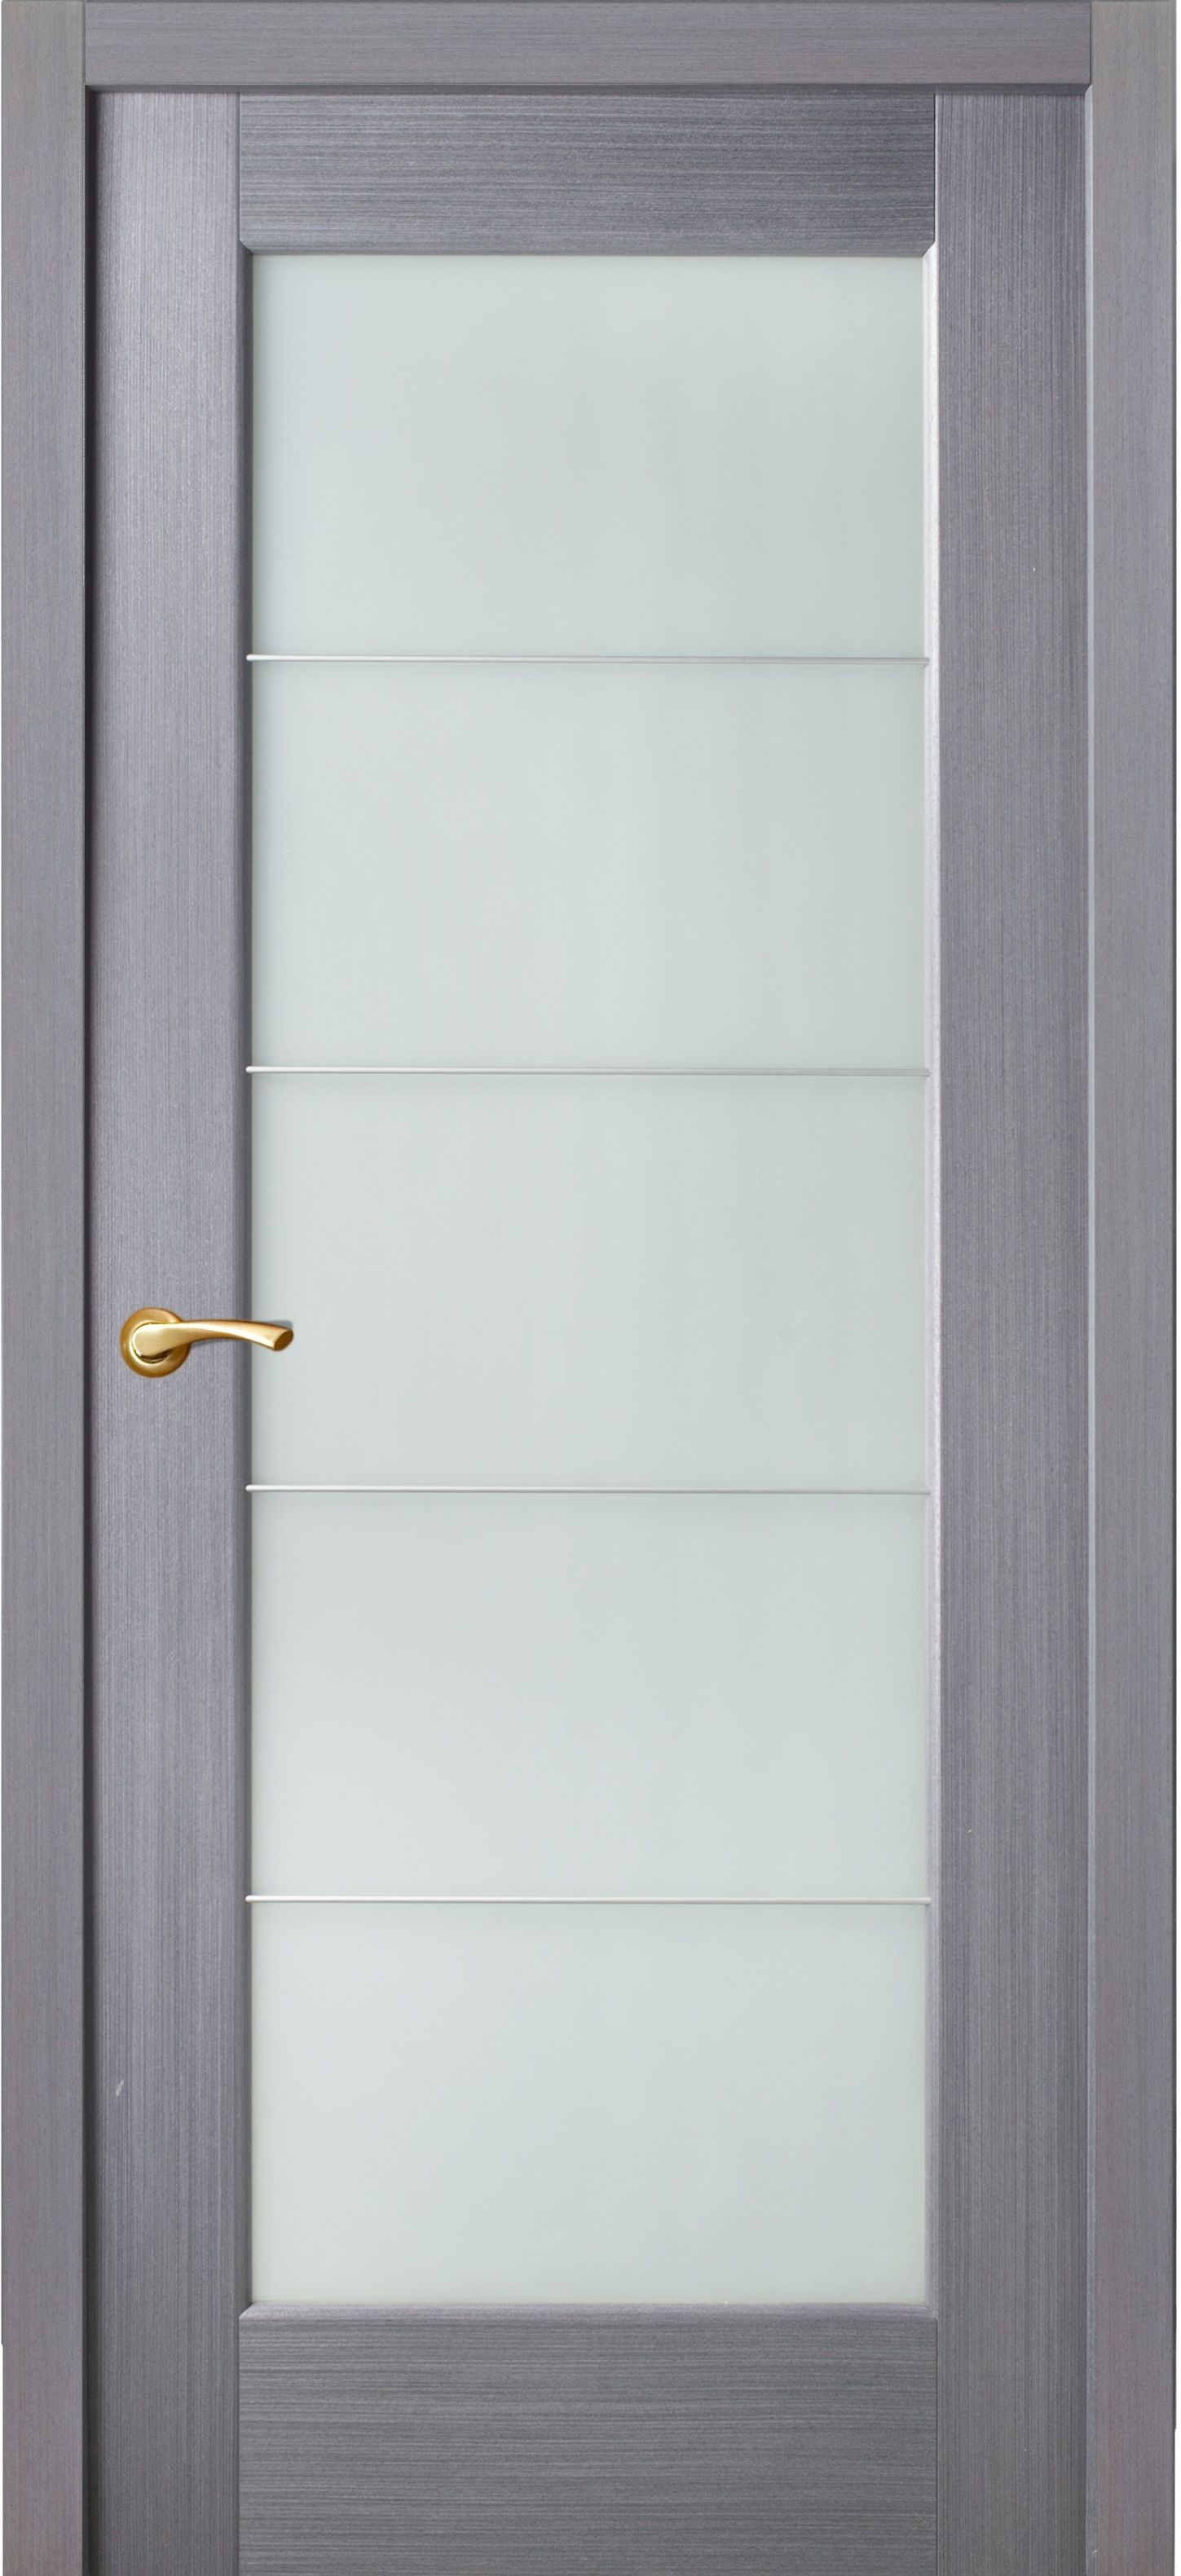 ... Door Grey Color In The Style Of Techno With Five Frosted Glass  Separated By Aluminum Partitions ...